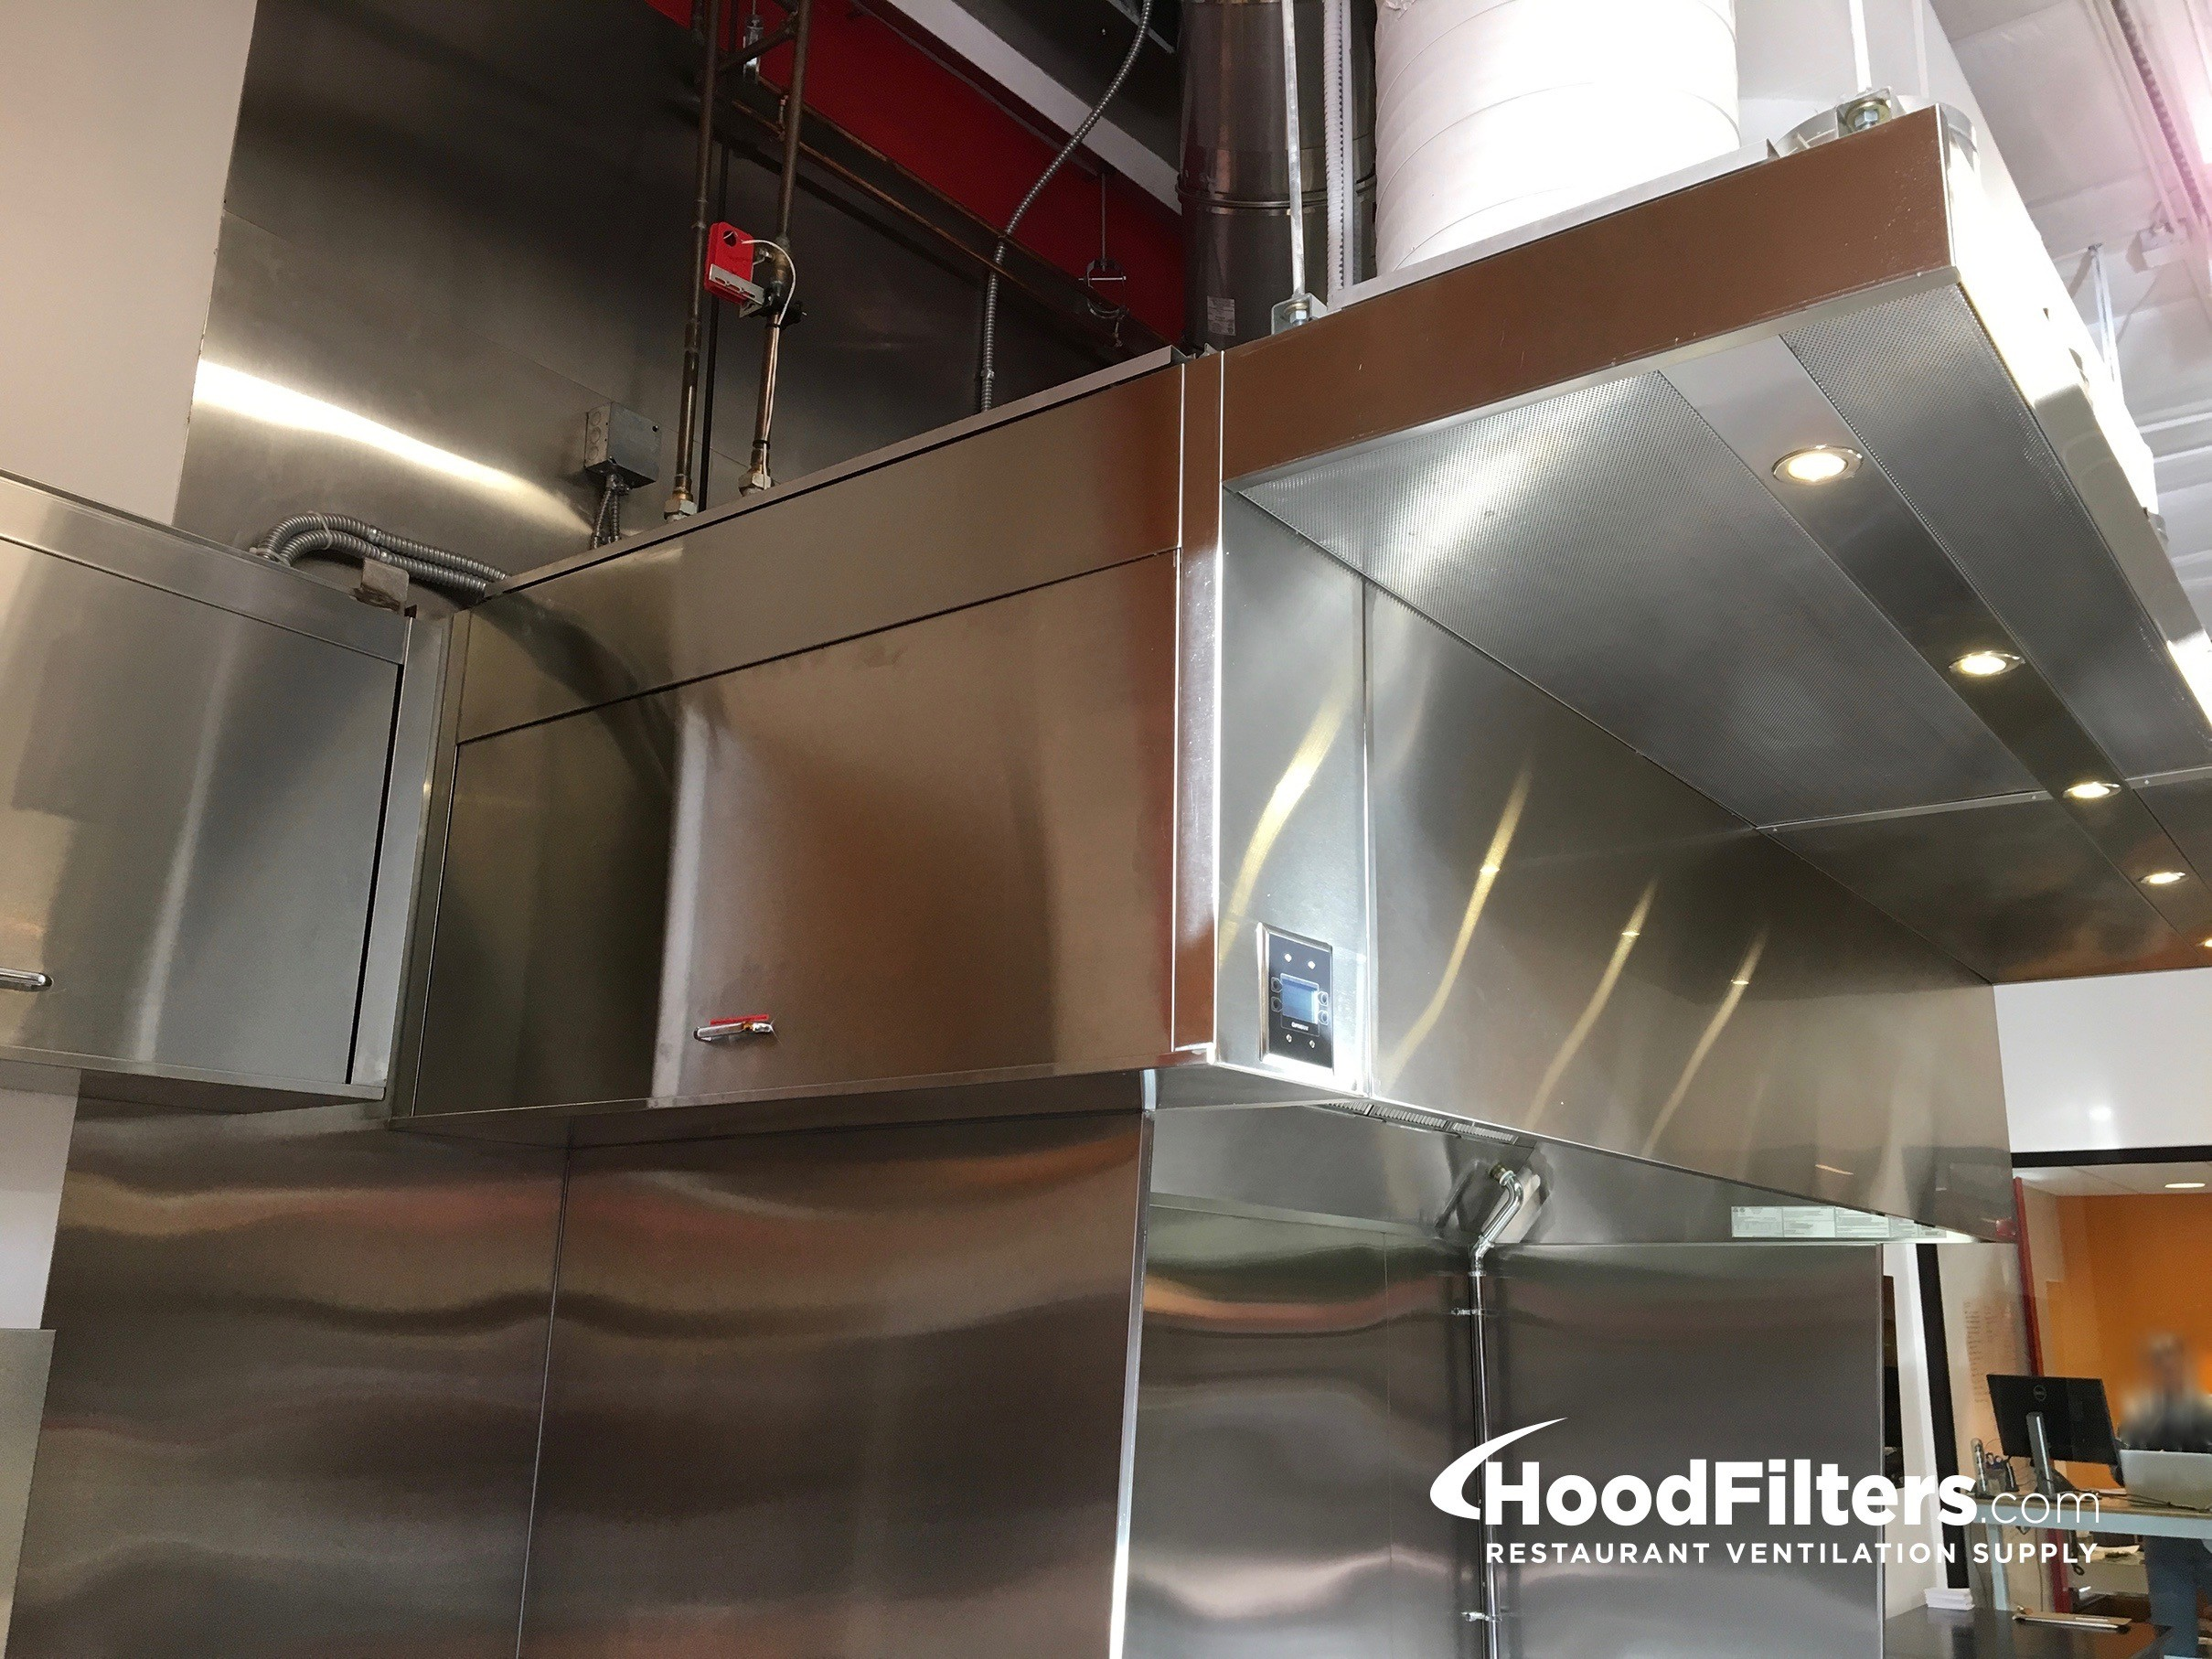 16 type 1 commercial kitchen hood and fan system